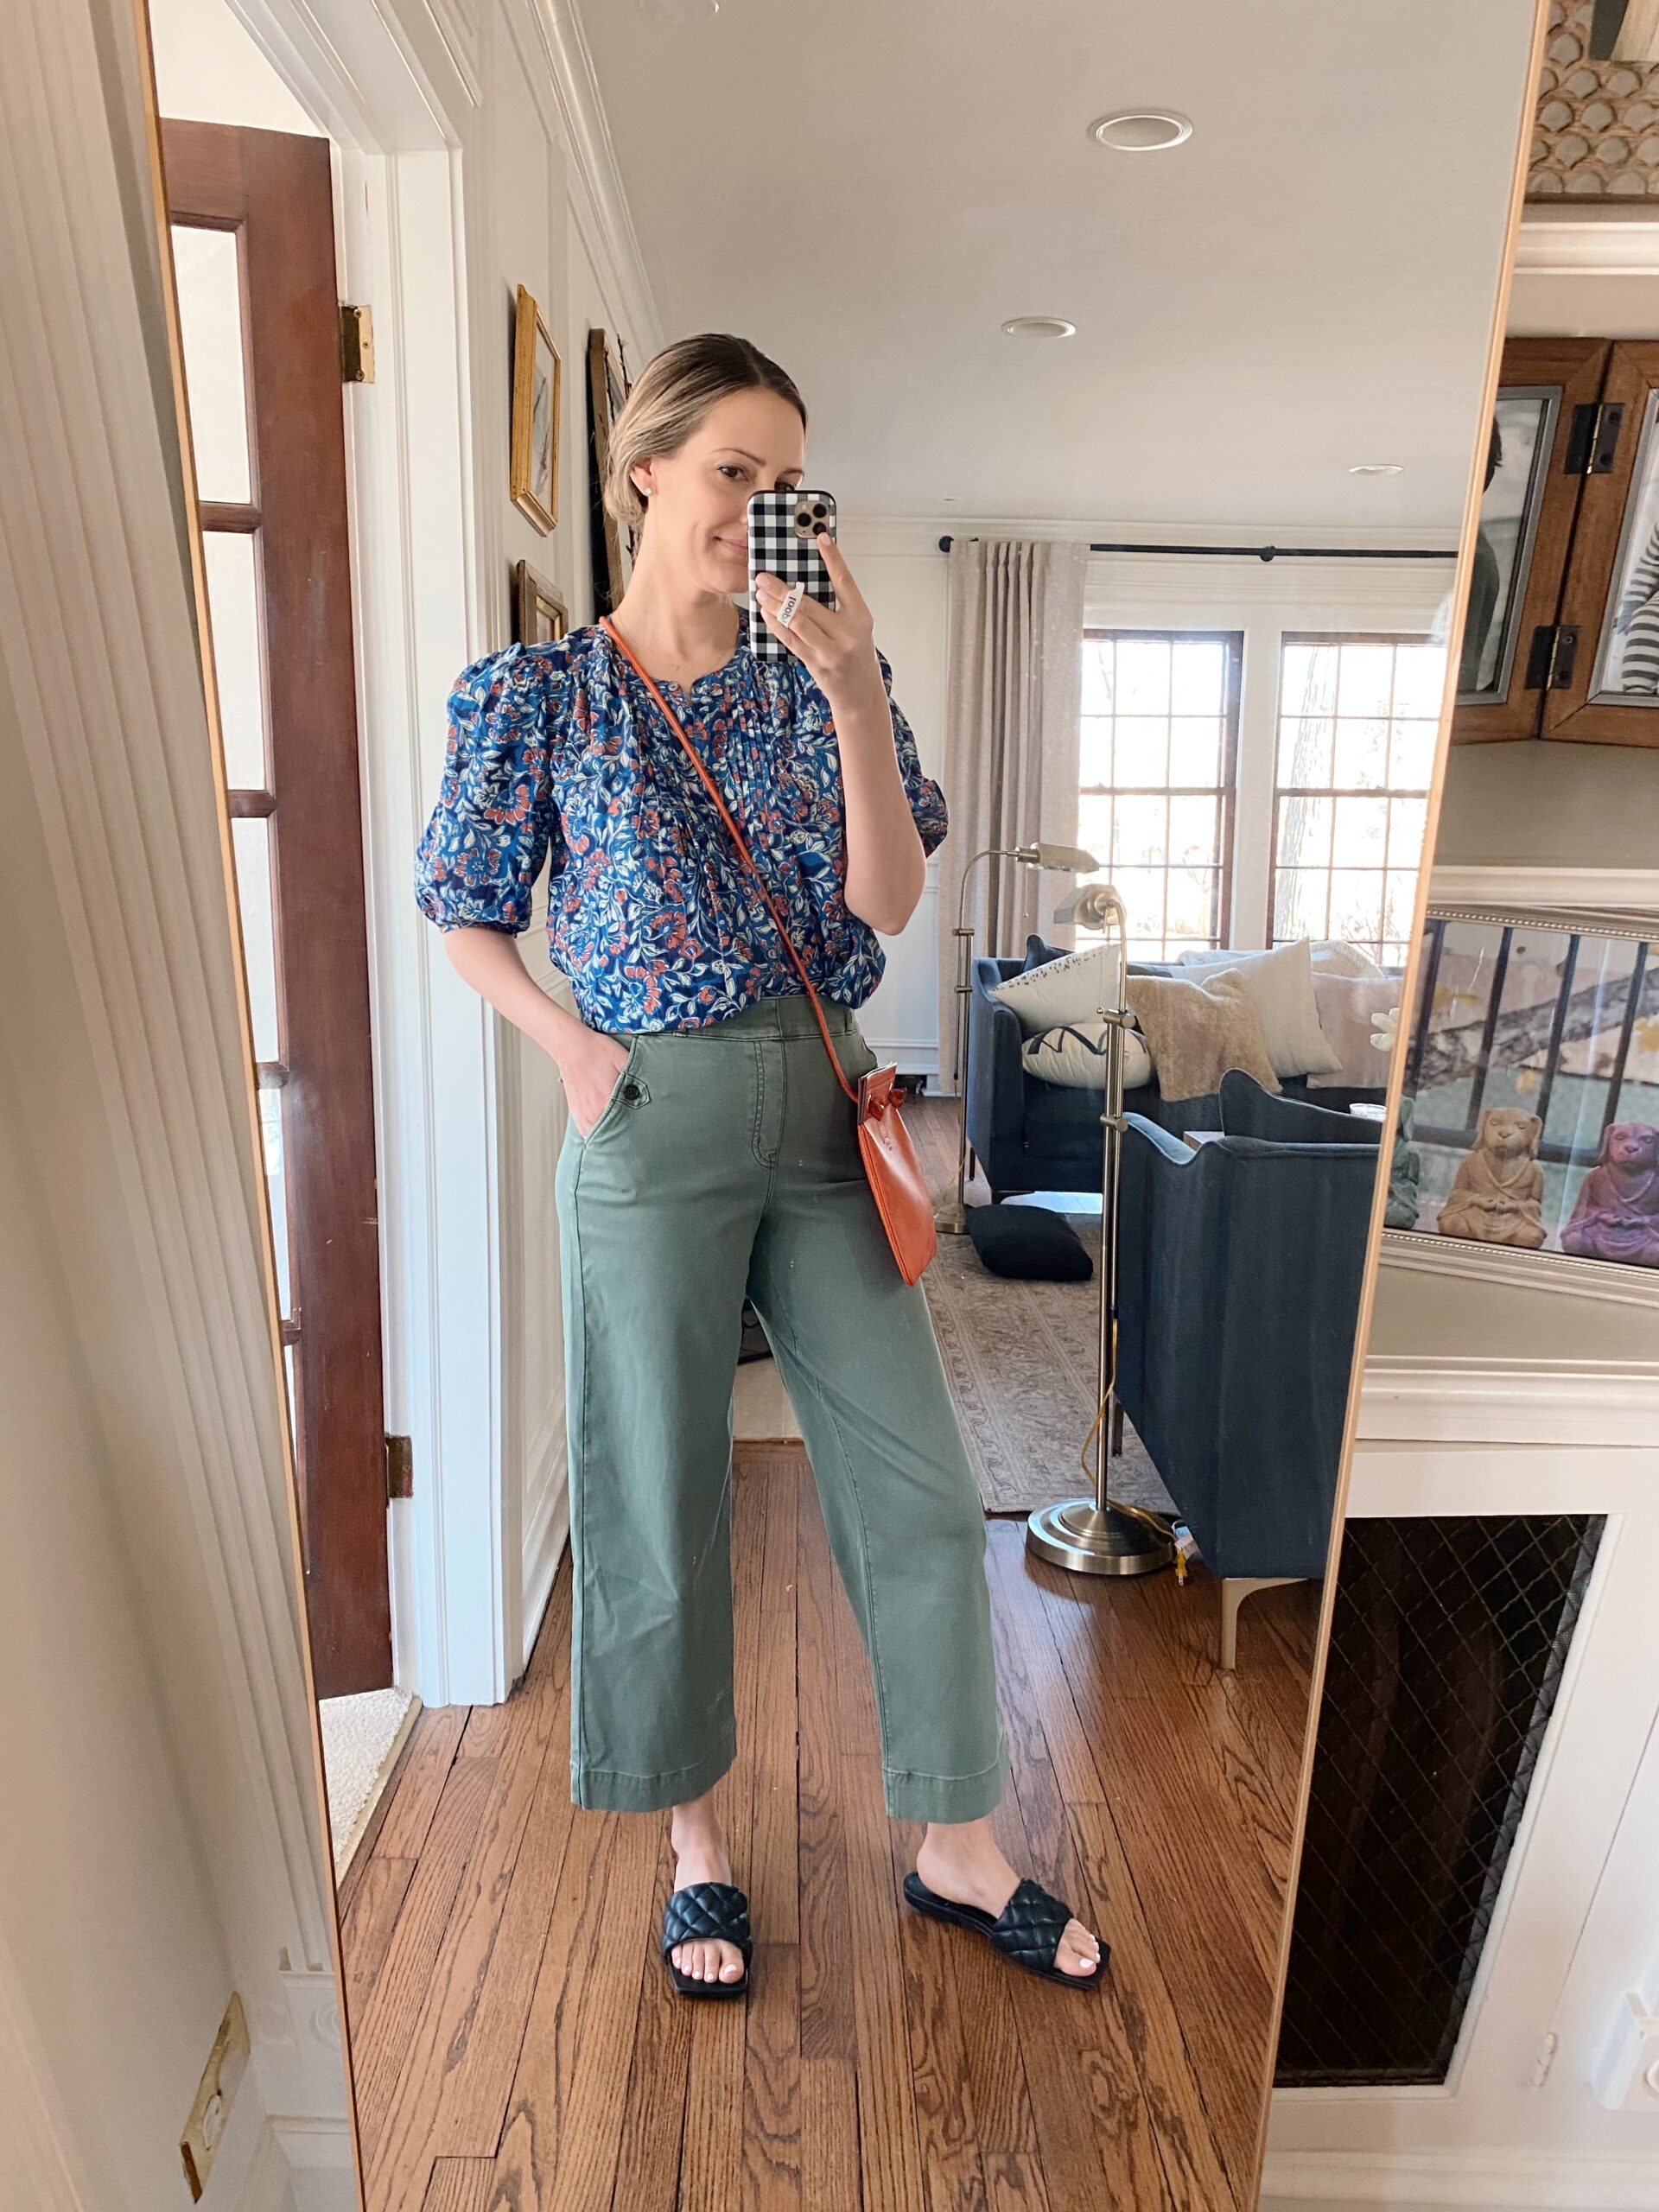 Real Outfit Recap 31 - Woman wearing printed top and spanx pants